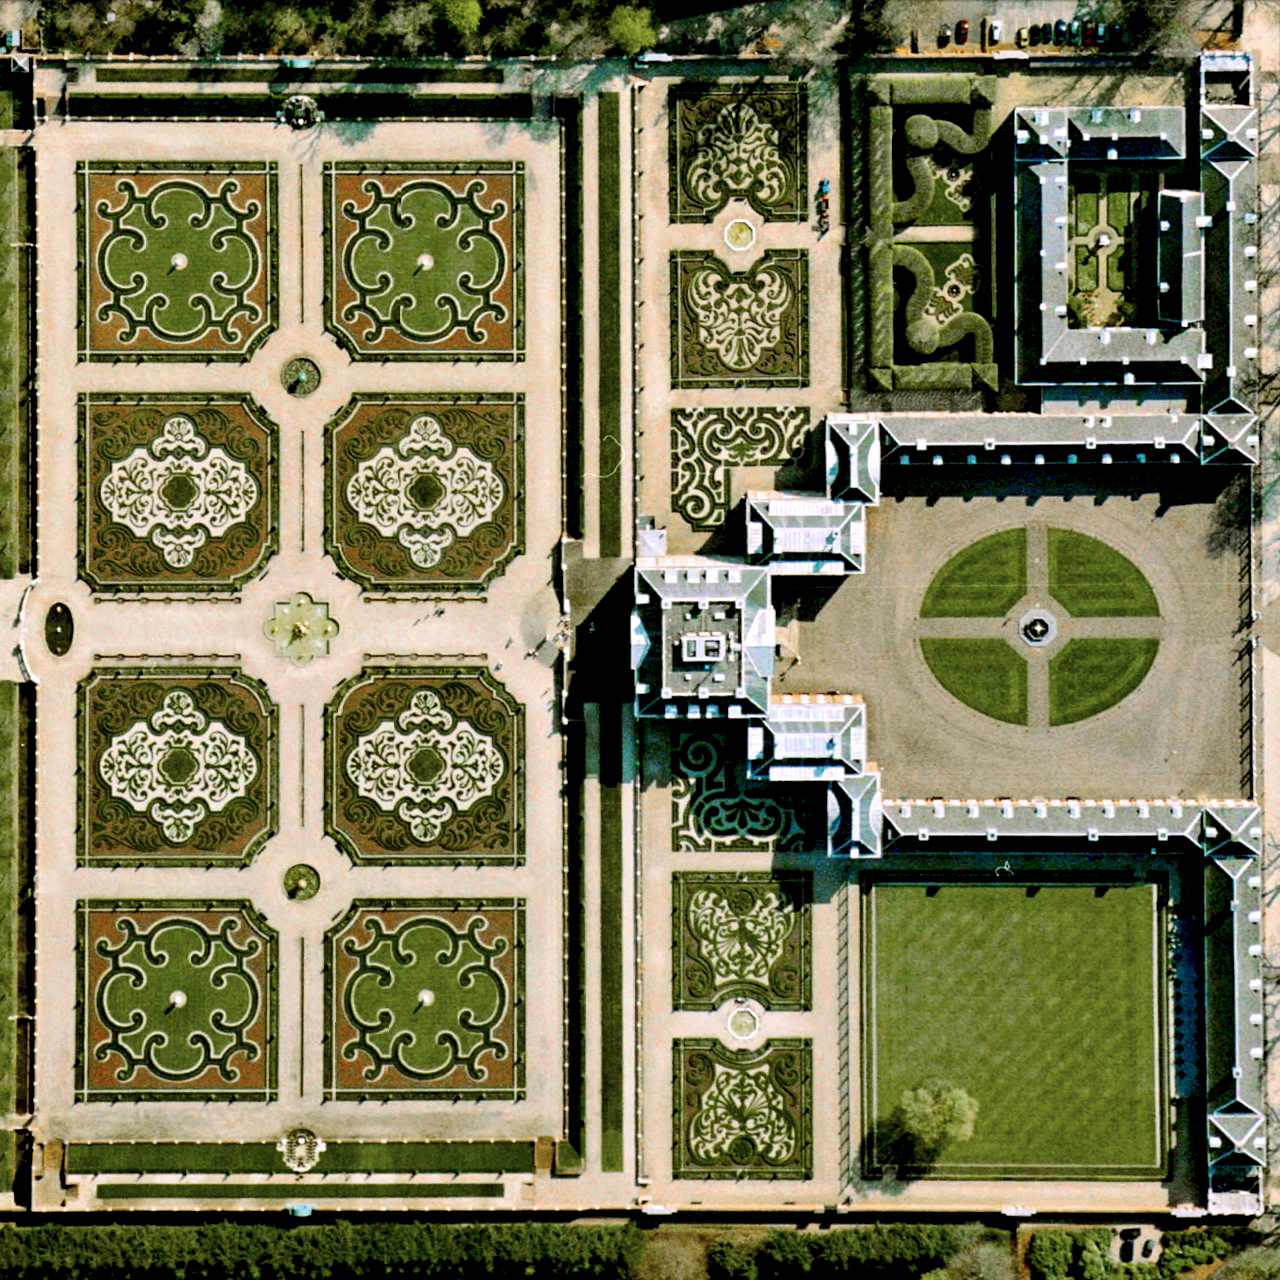 """1/28/2016   Het Loo Palace   Apeldoorn, Netherlands  52.234167°N 5.945833°E    Het Loo Palace is located in Apeldoorn, Netherlands. """"The Great Garden,"""" situated behind the residence, follows the general Baroque landscape design formula: perfect symmetry, axial layout with radiating gravel walks, parterres with fountains, basins, and statues."""